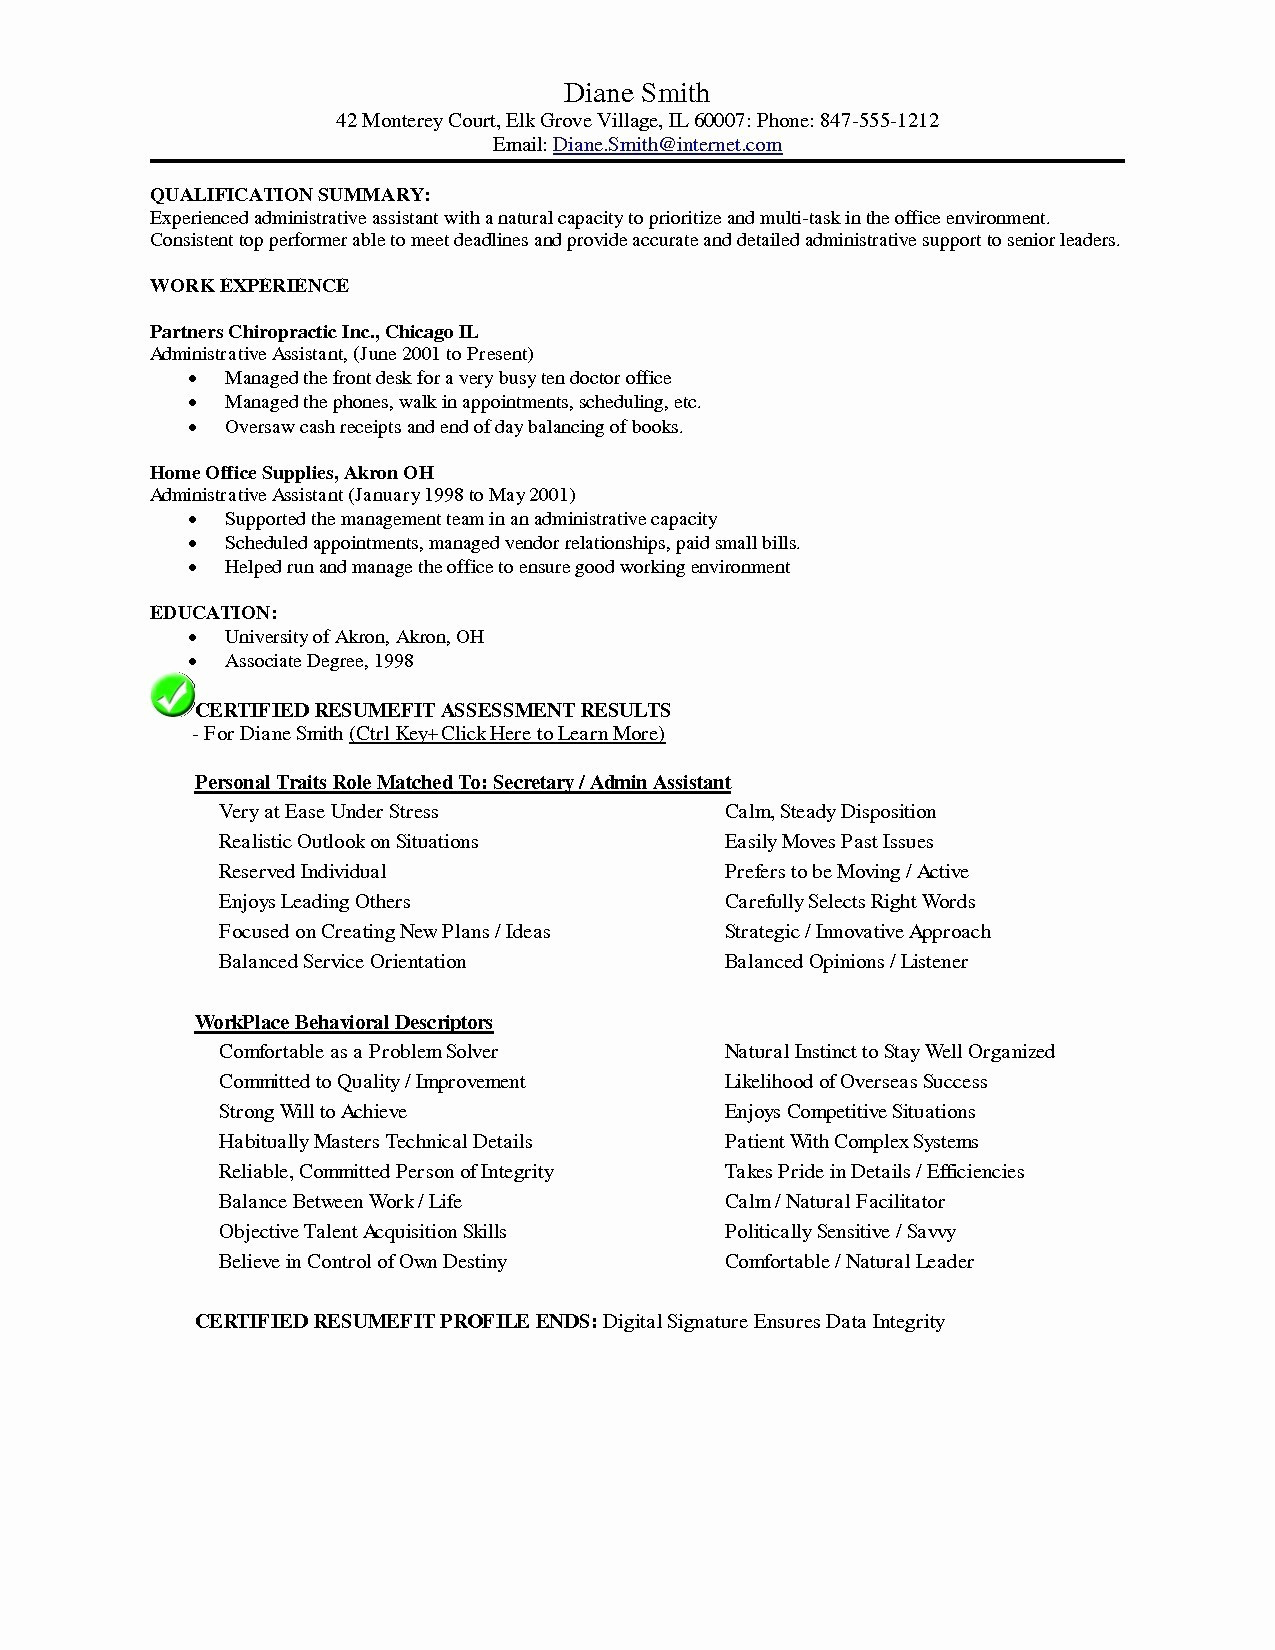 Administrative assistant Resume Template Microsoft Word - New Resume Samples for Administrative assistant